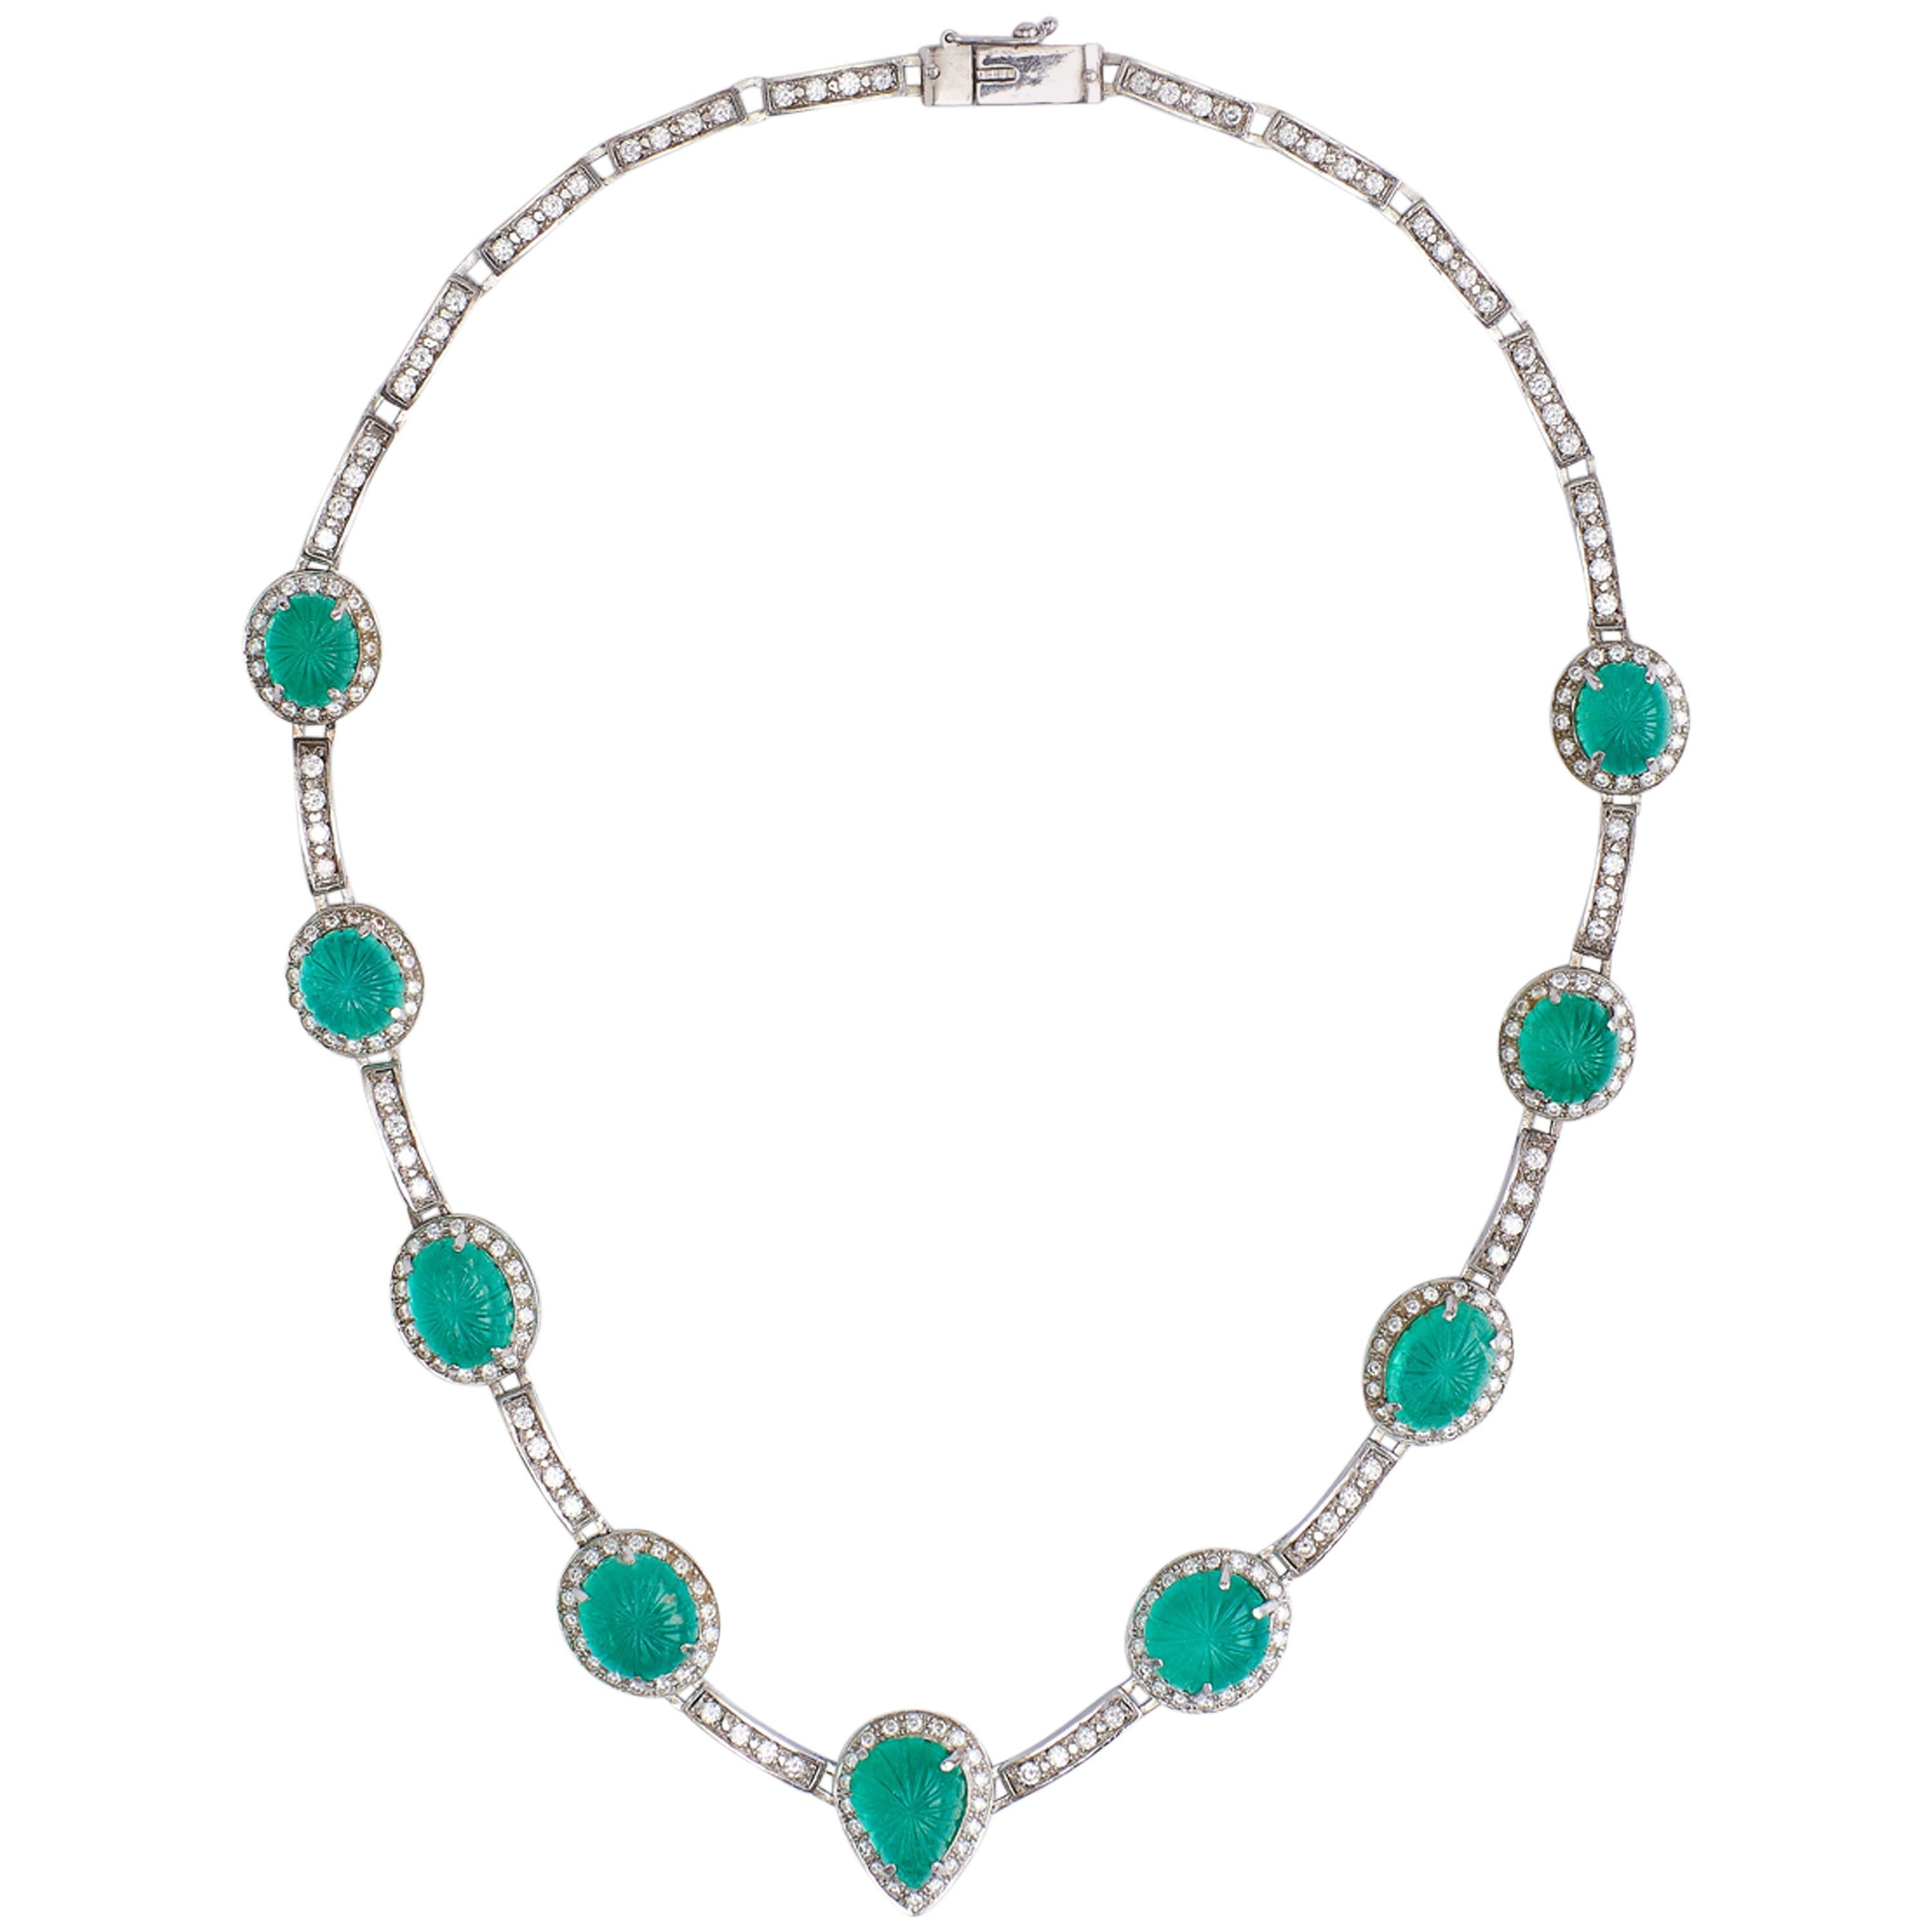 18 Karat White Gold Necklace with Emeralds and Diamonds Certified